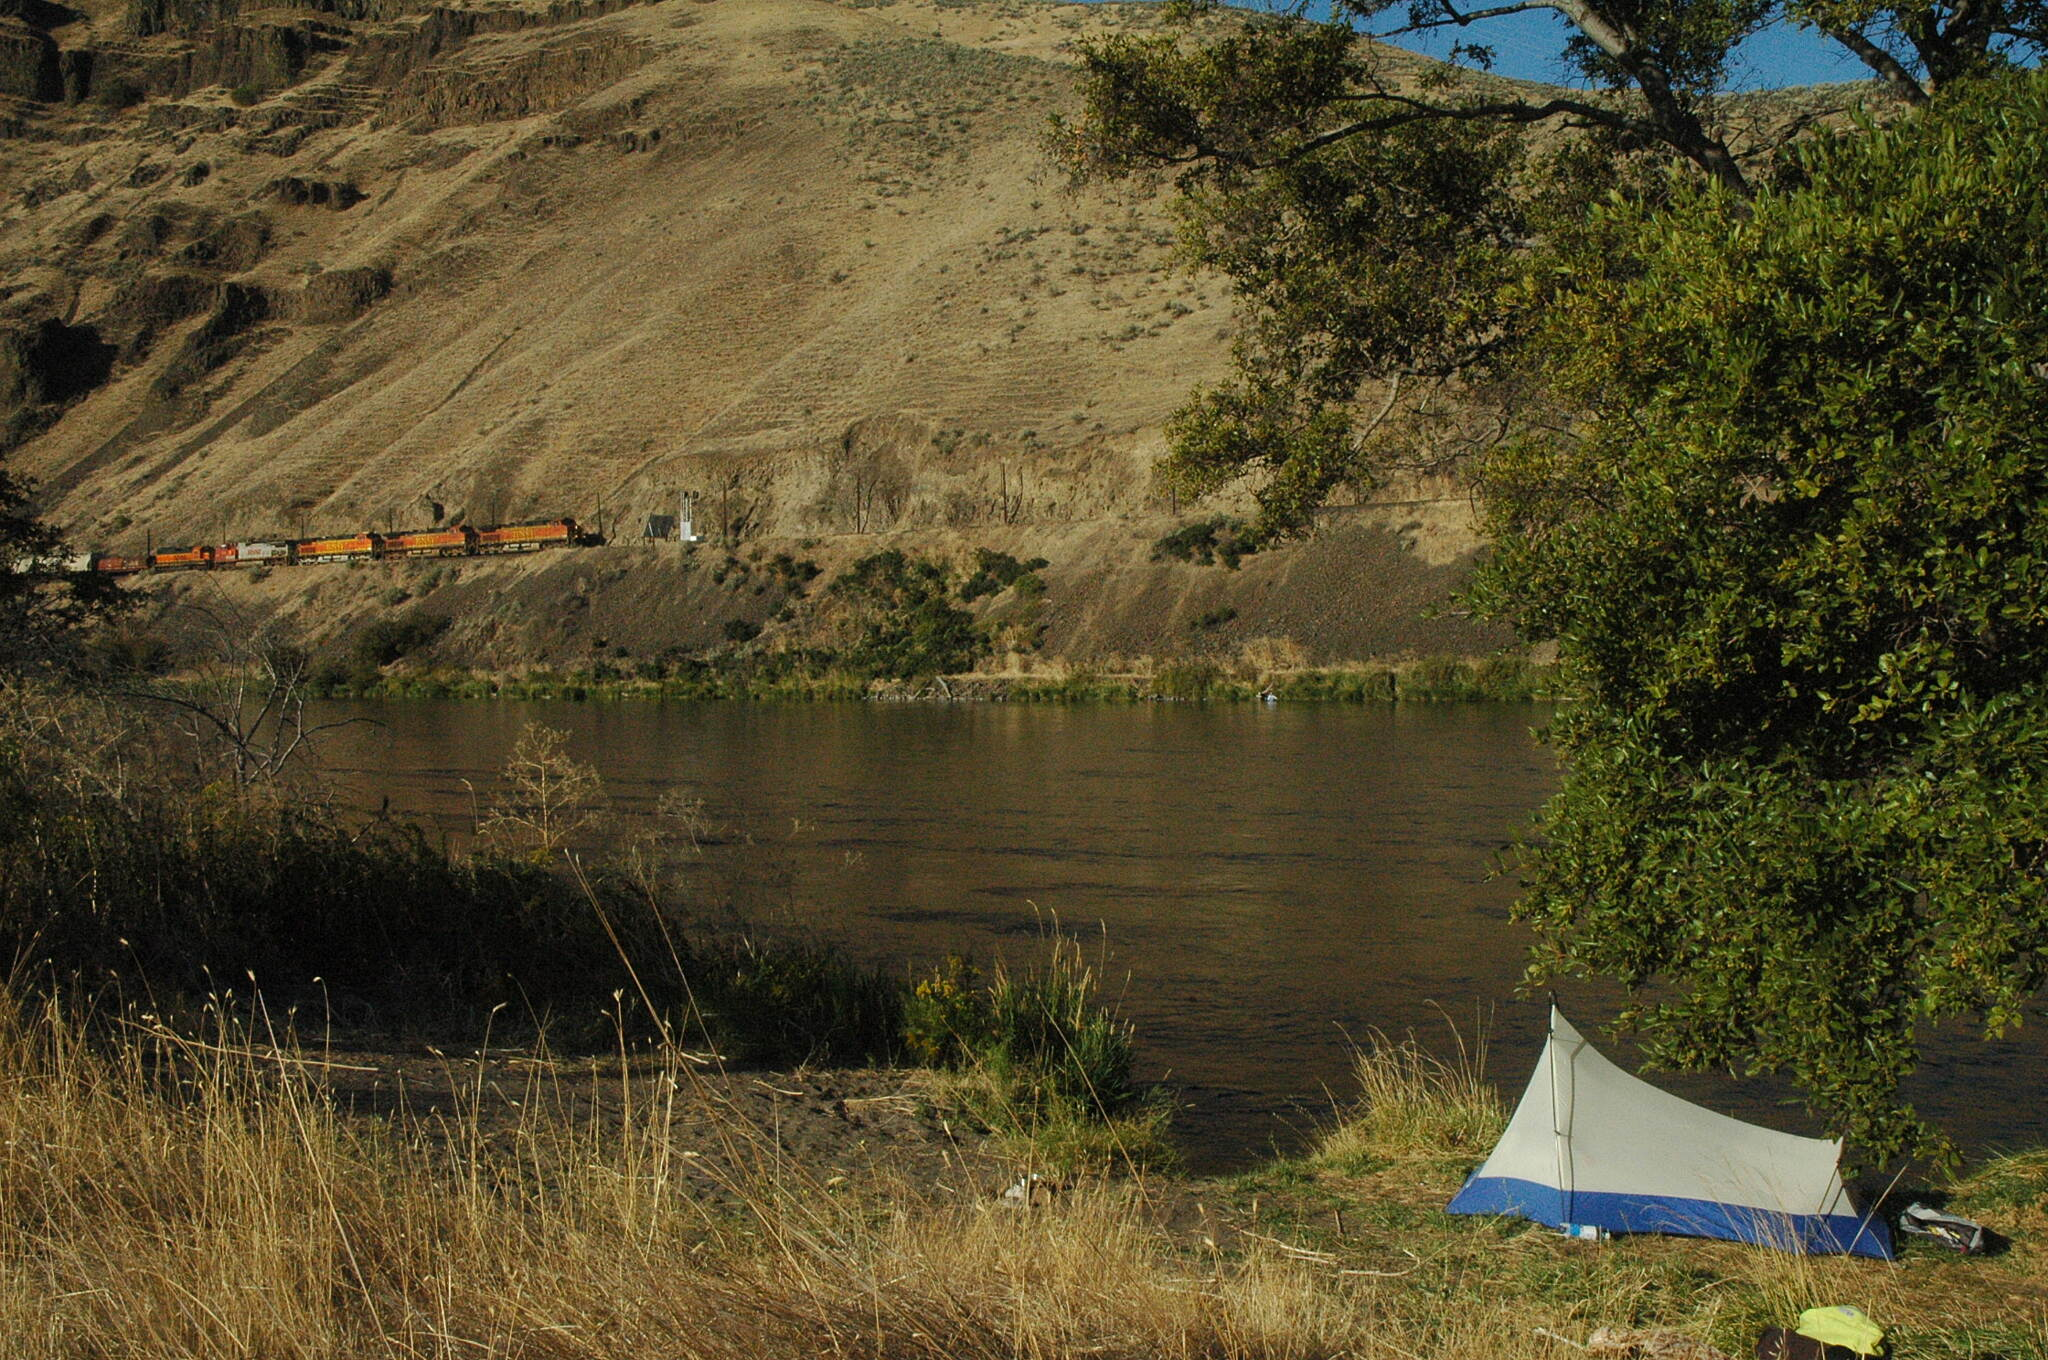 Deschutes River Railbed Trail Camp Morning at Boxcar rapids, trains and Rails to Trails, it doesn't get better than this